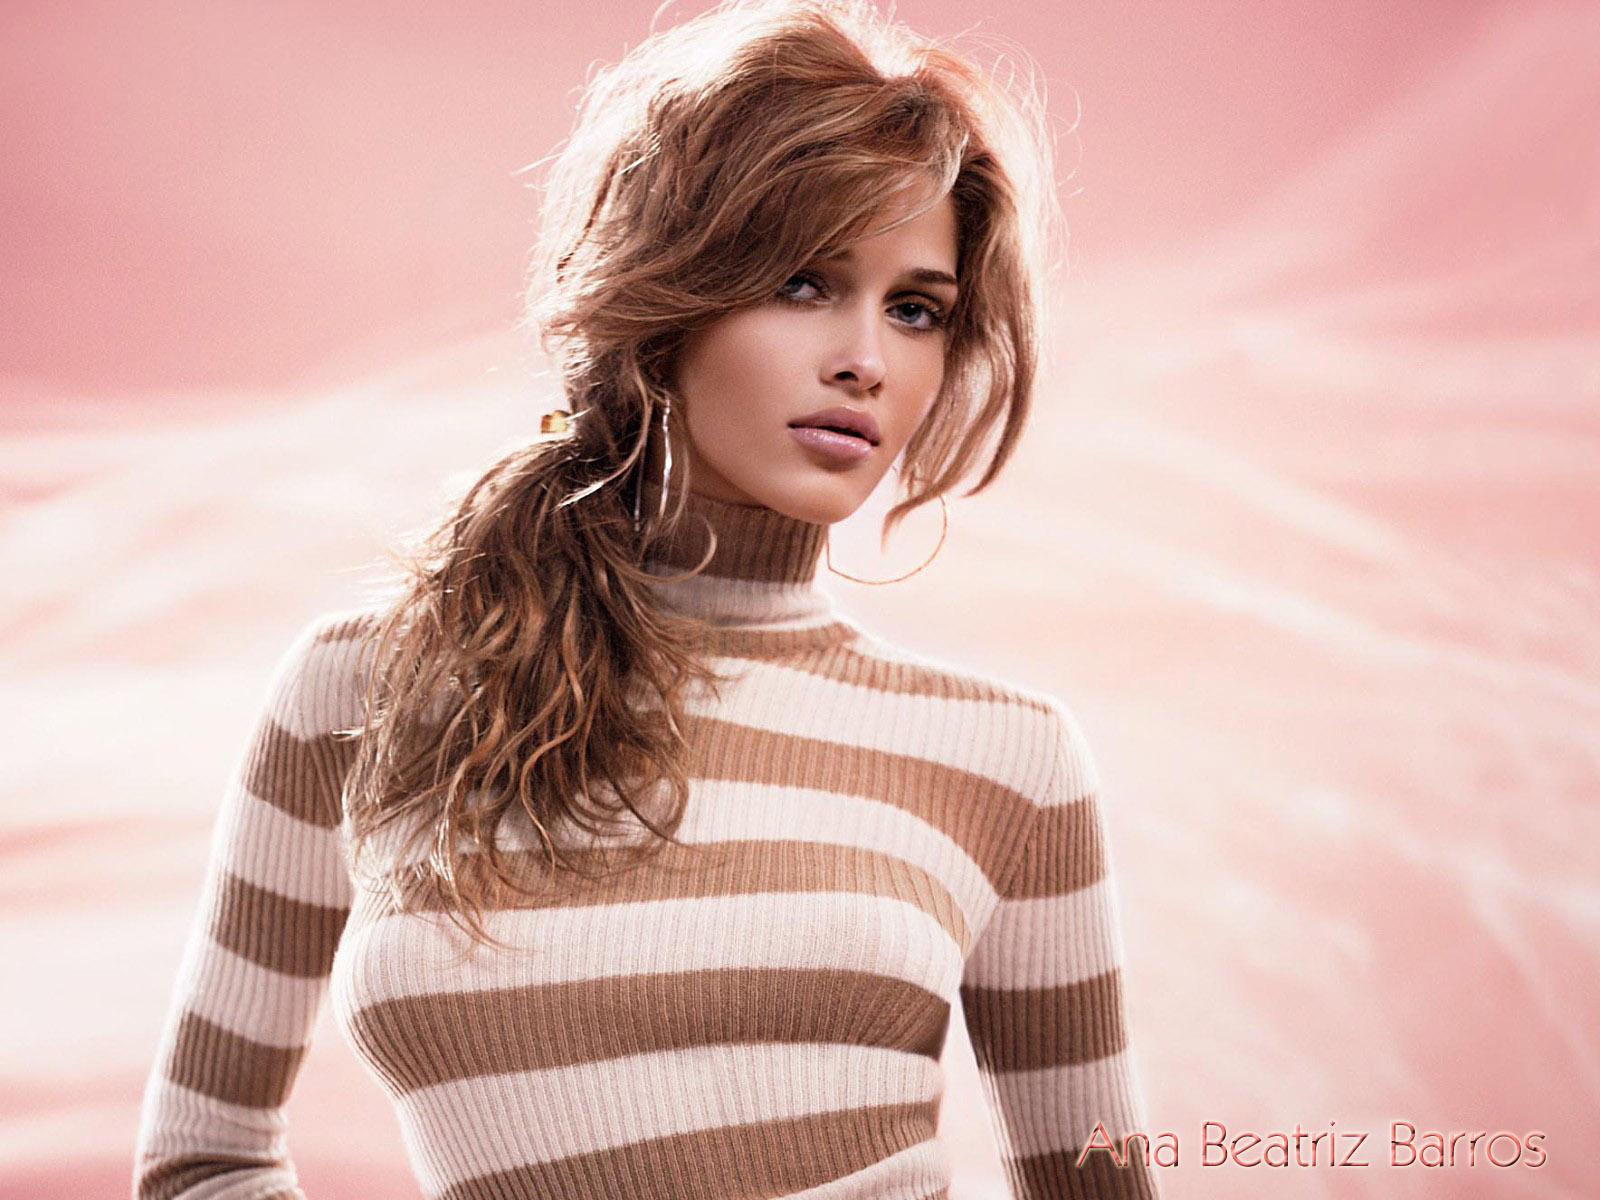 Watch Ana Beatriz Barros BRA 	6 	2002-2003, 2005-2006, 2008?009 video